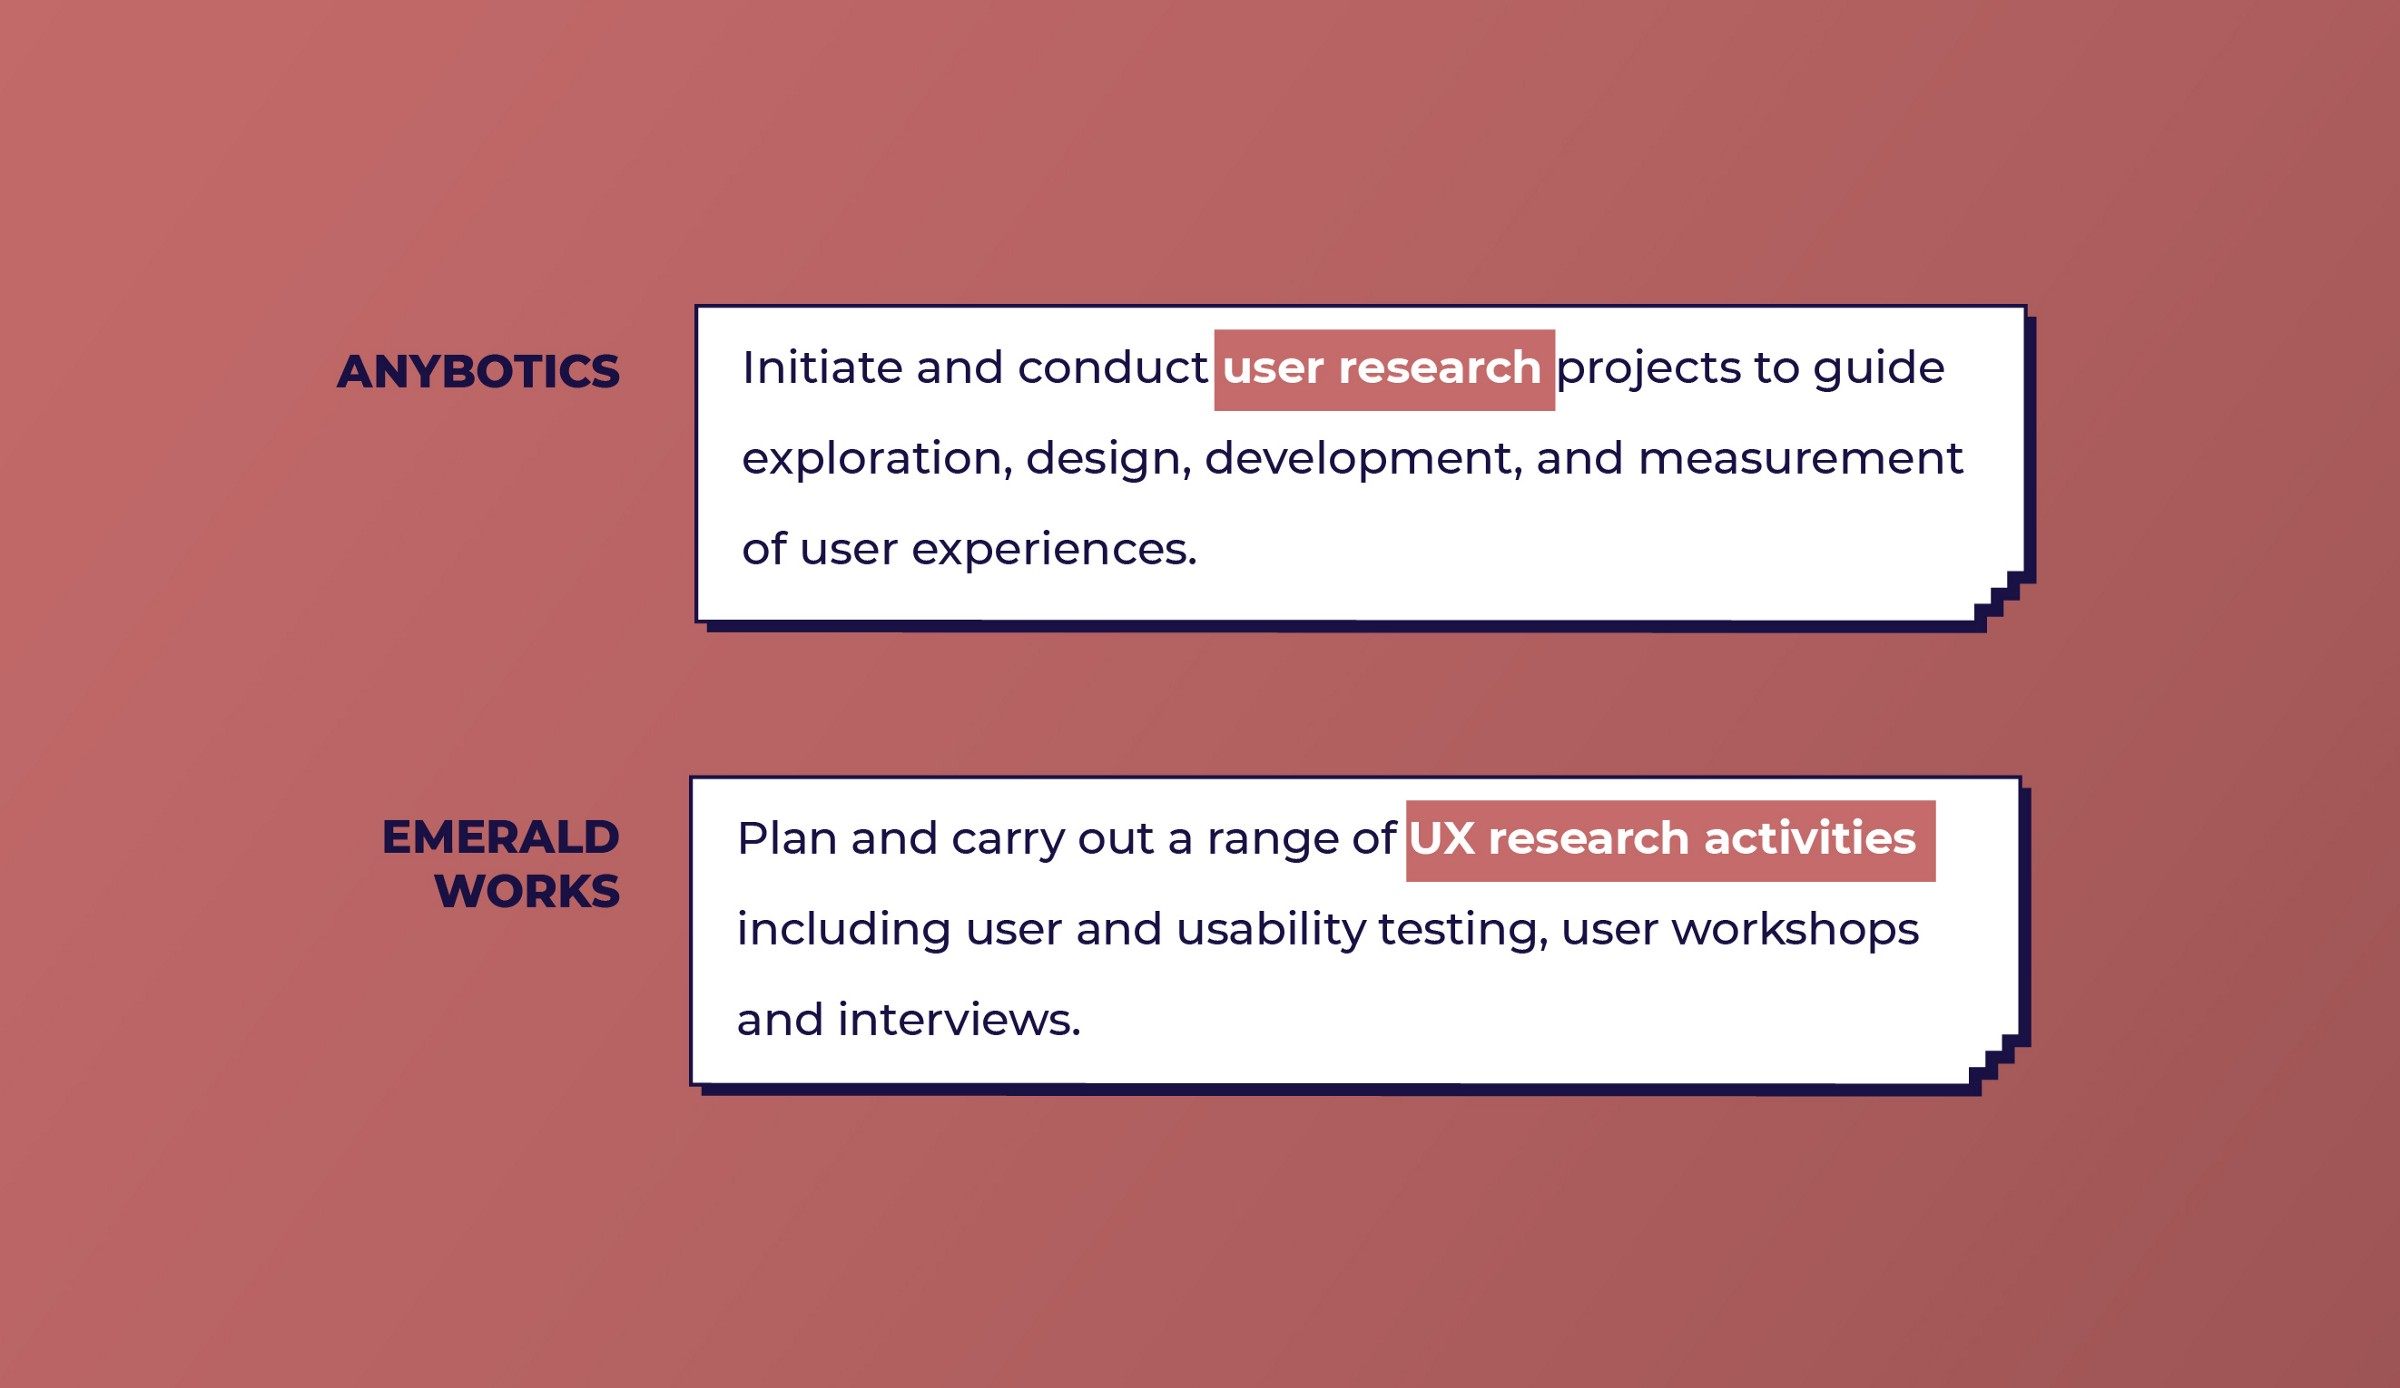 Anybotics and Emerald works look for User Research work from UX designers